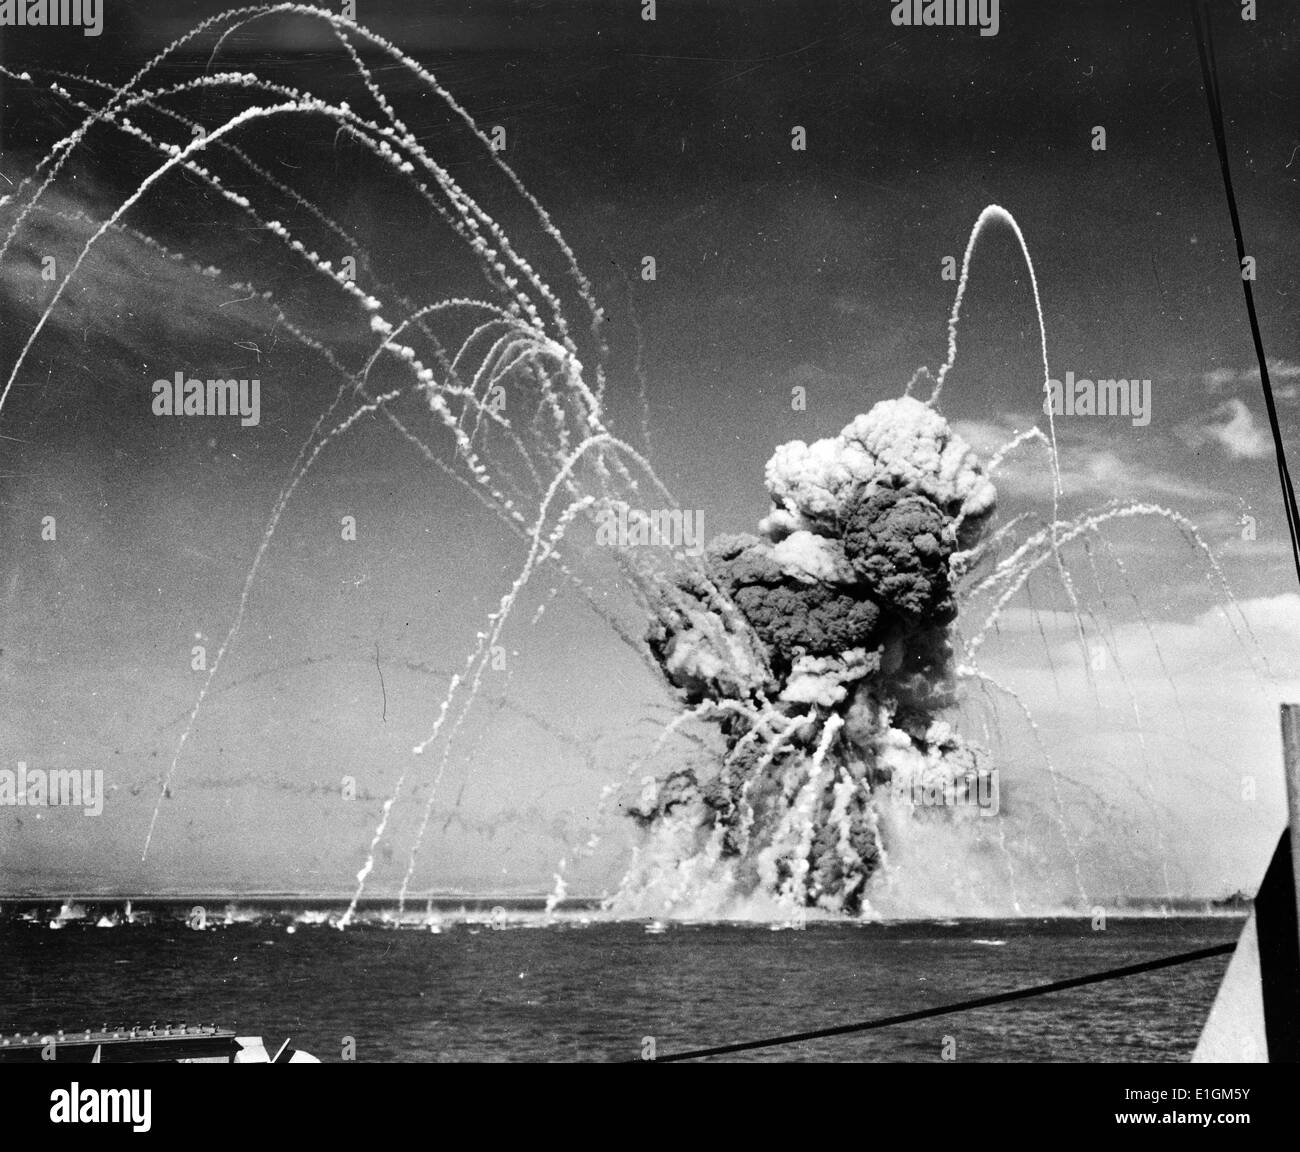 American cargo ship exploding after being hit by Nazi dive bombers in an air raid on a convoy in the invasion of Sicily - Stock Image